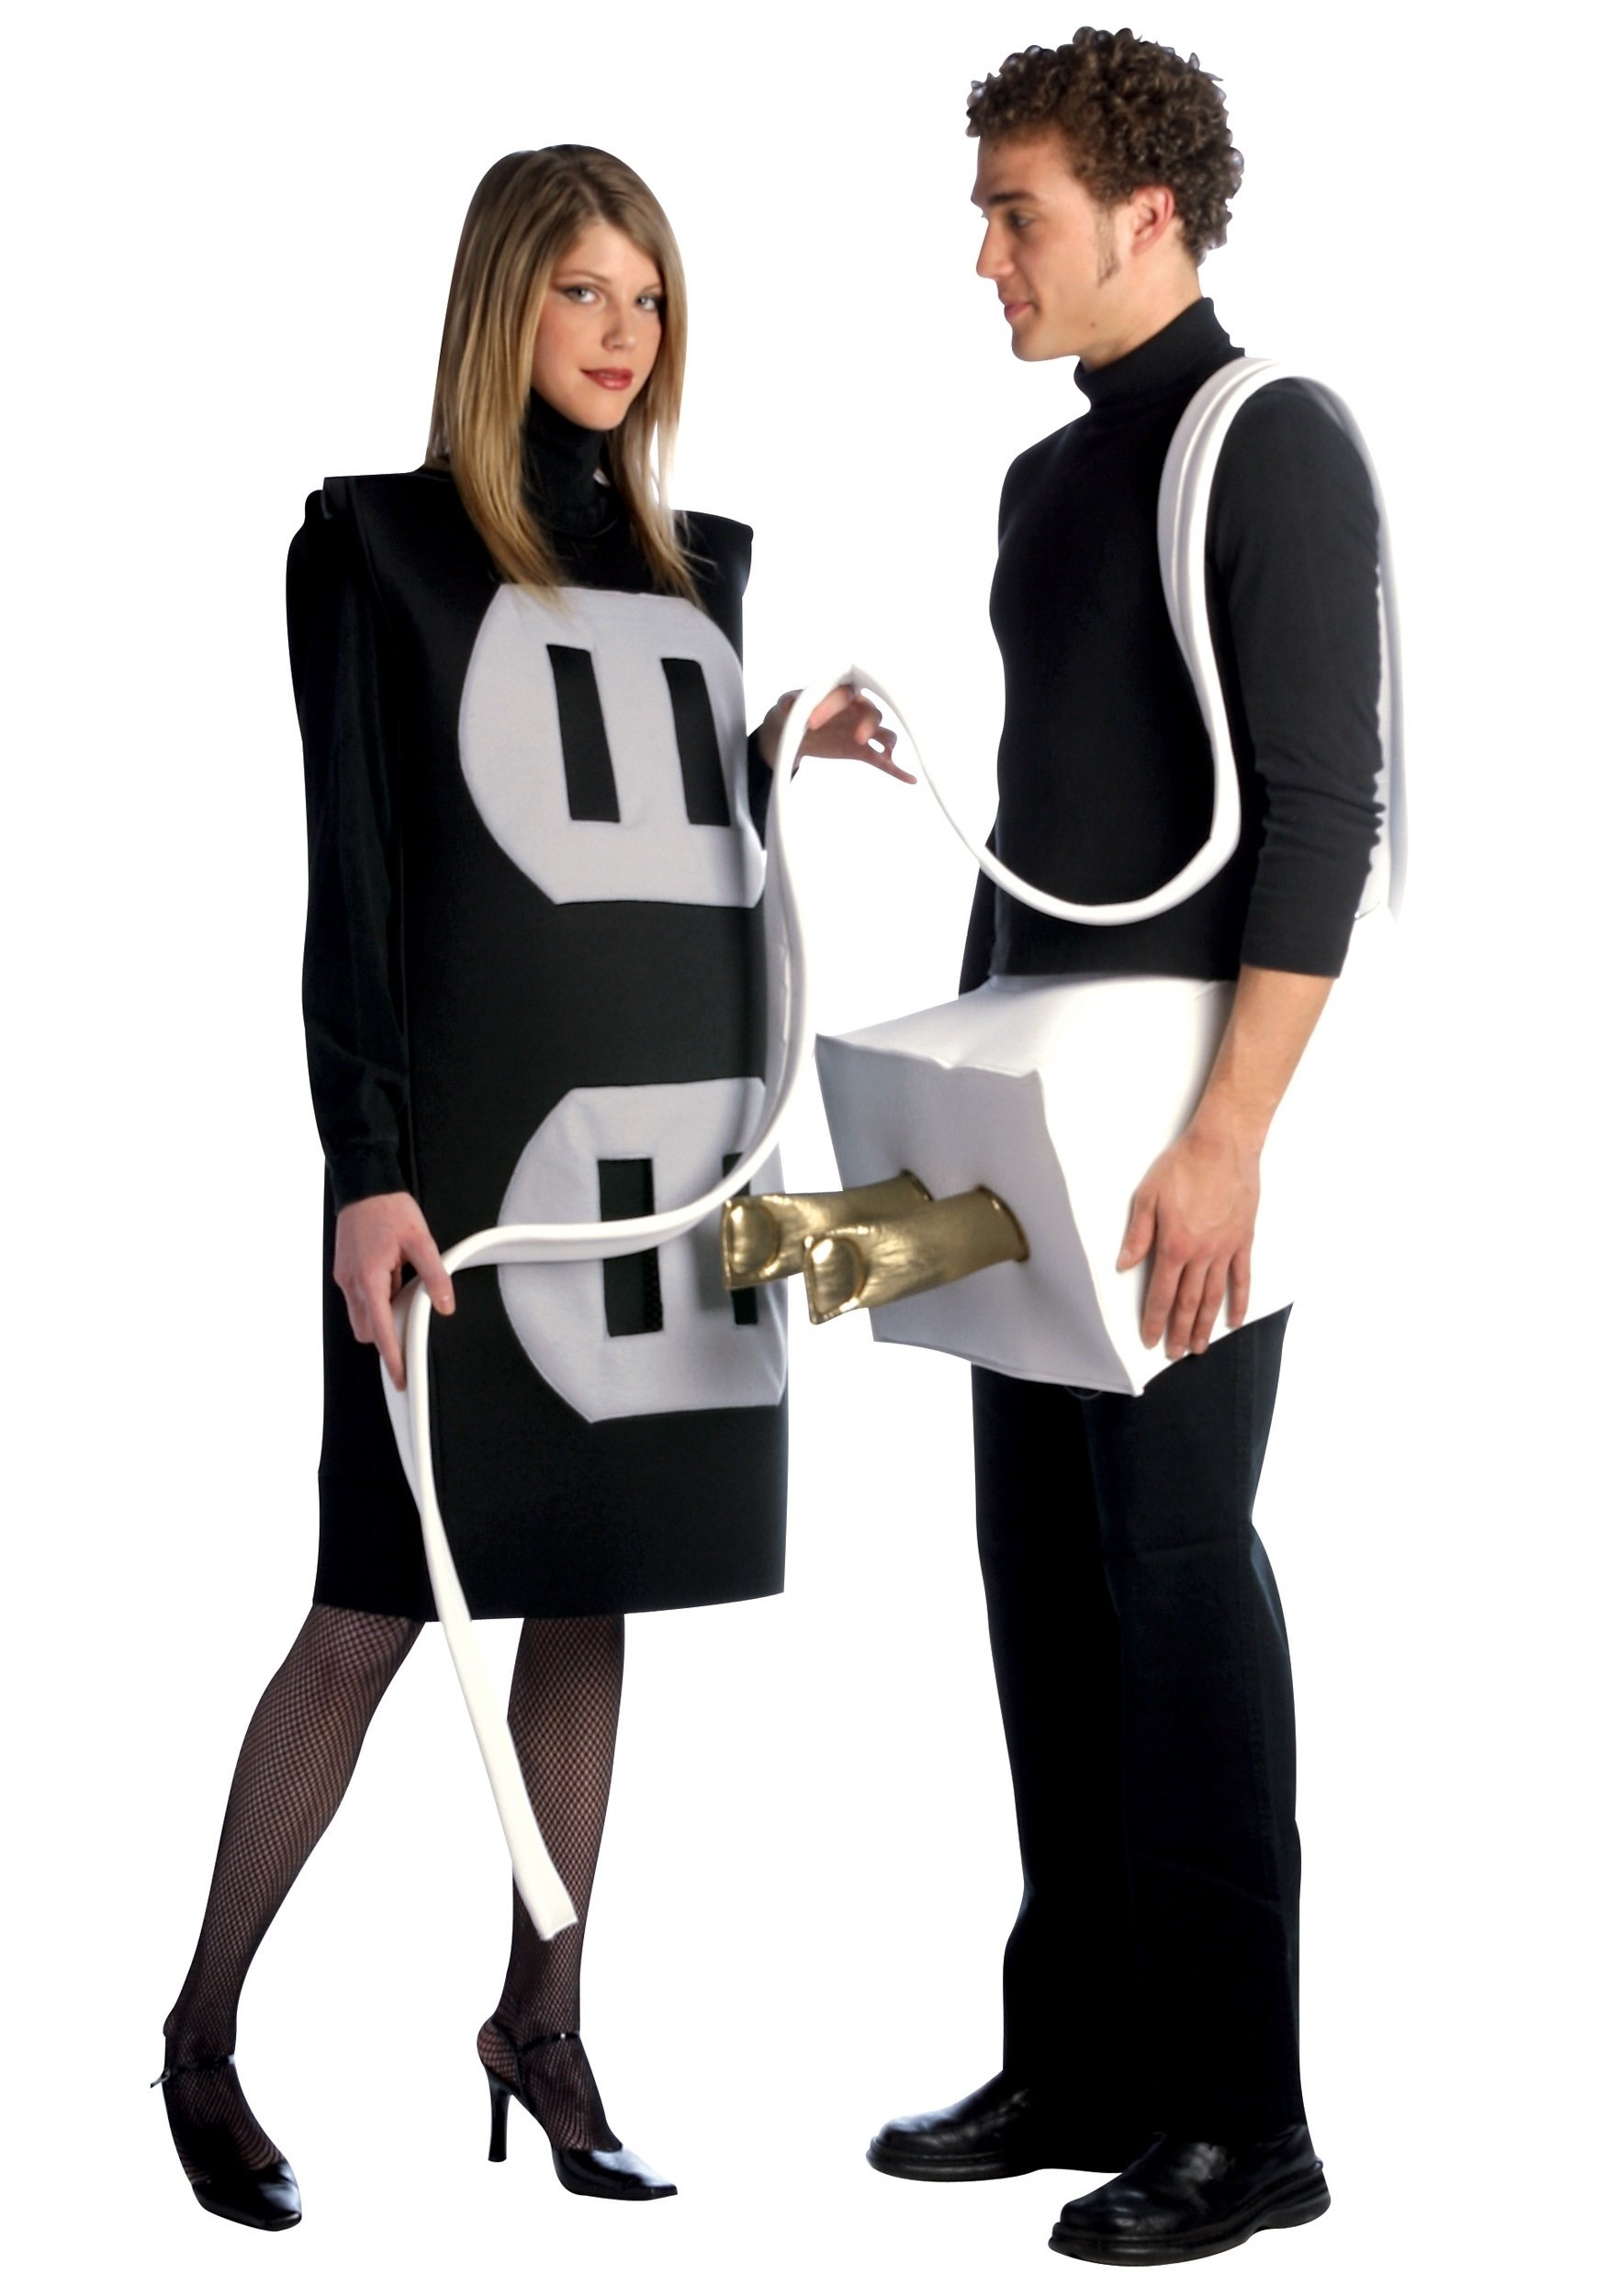 10 Perfect Couples Funny Halloween Costume Ideas plug and socket costume funny couples costume ideas 14 2021